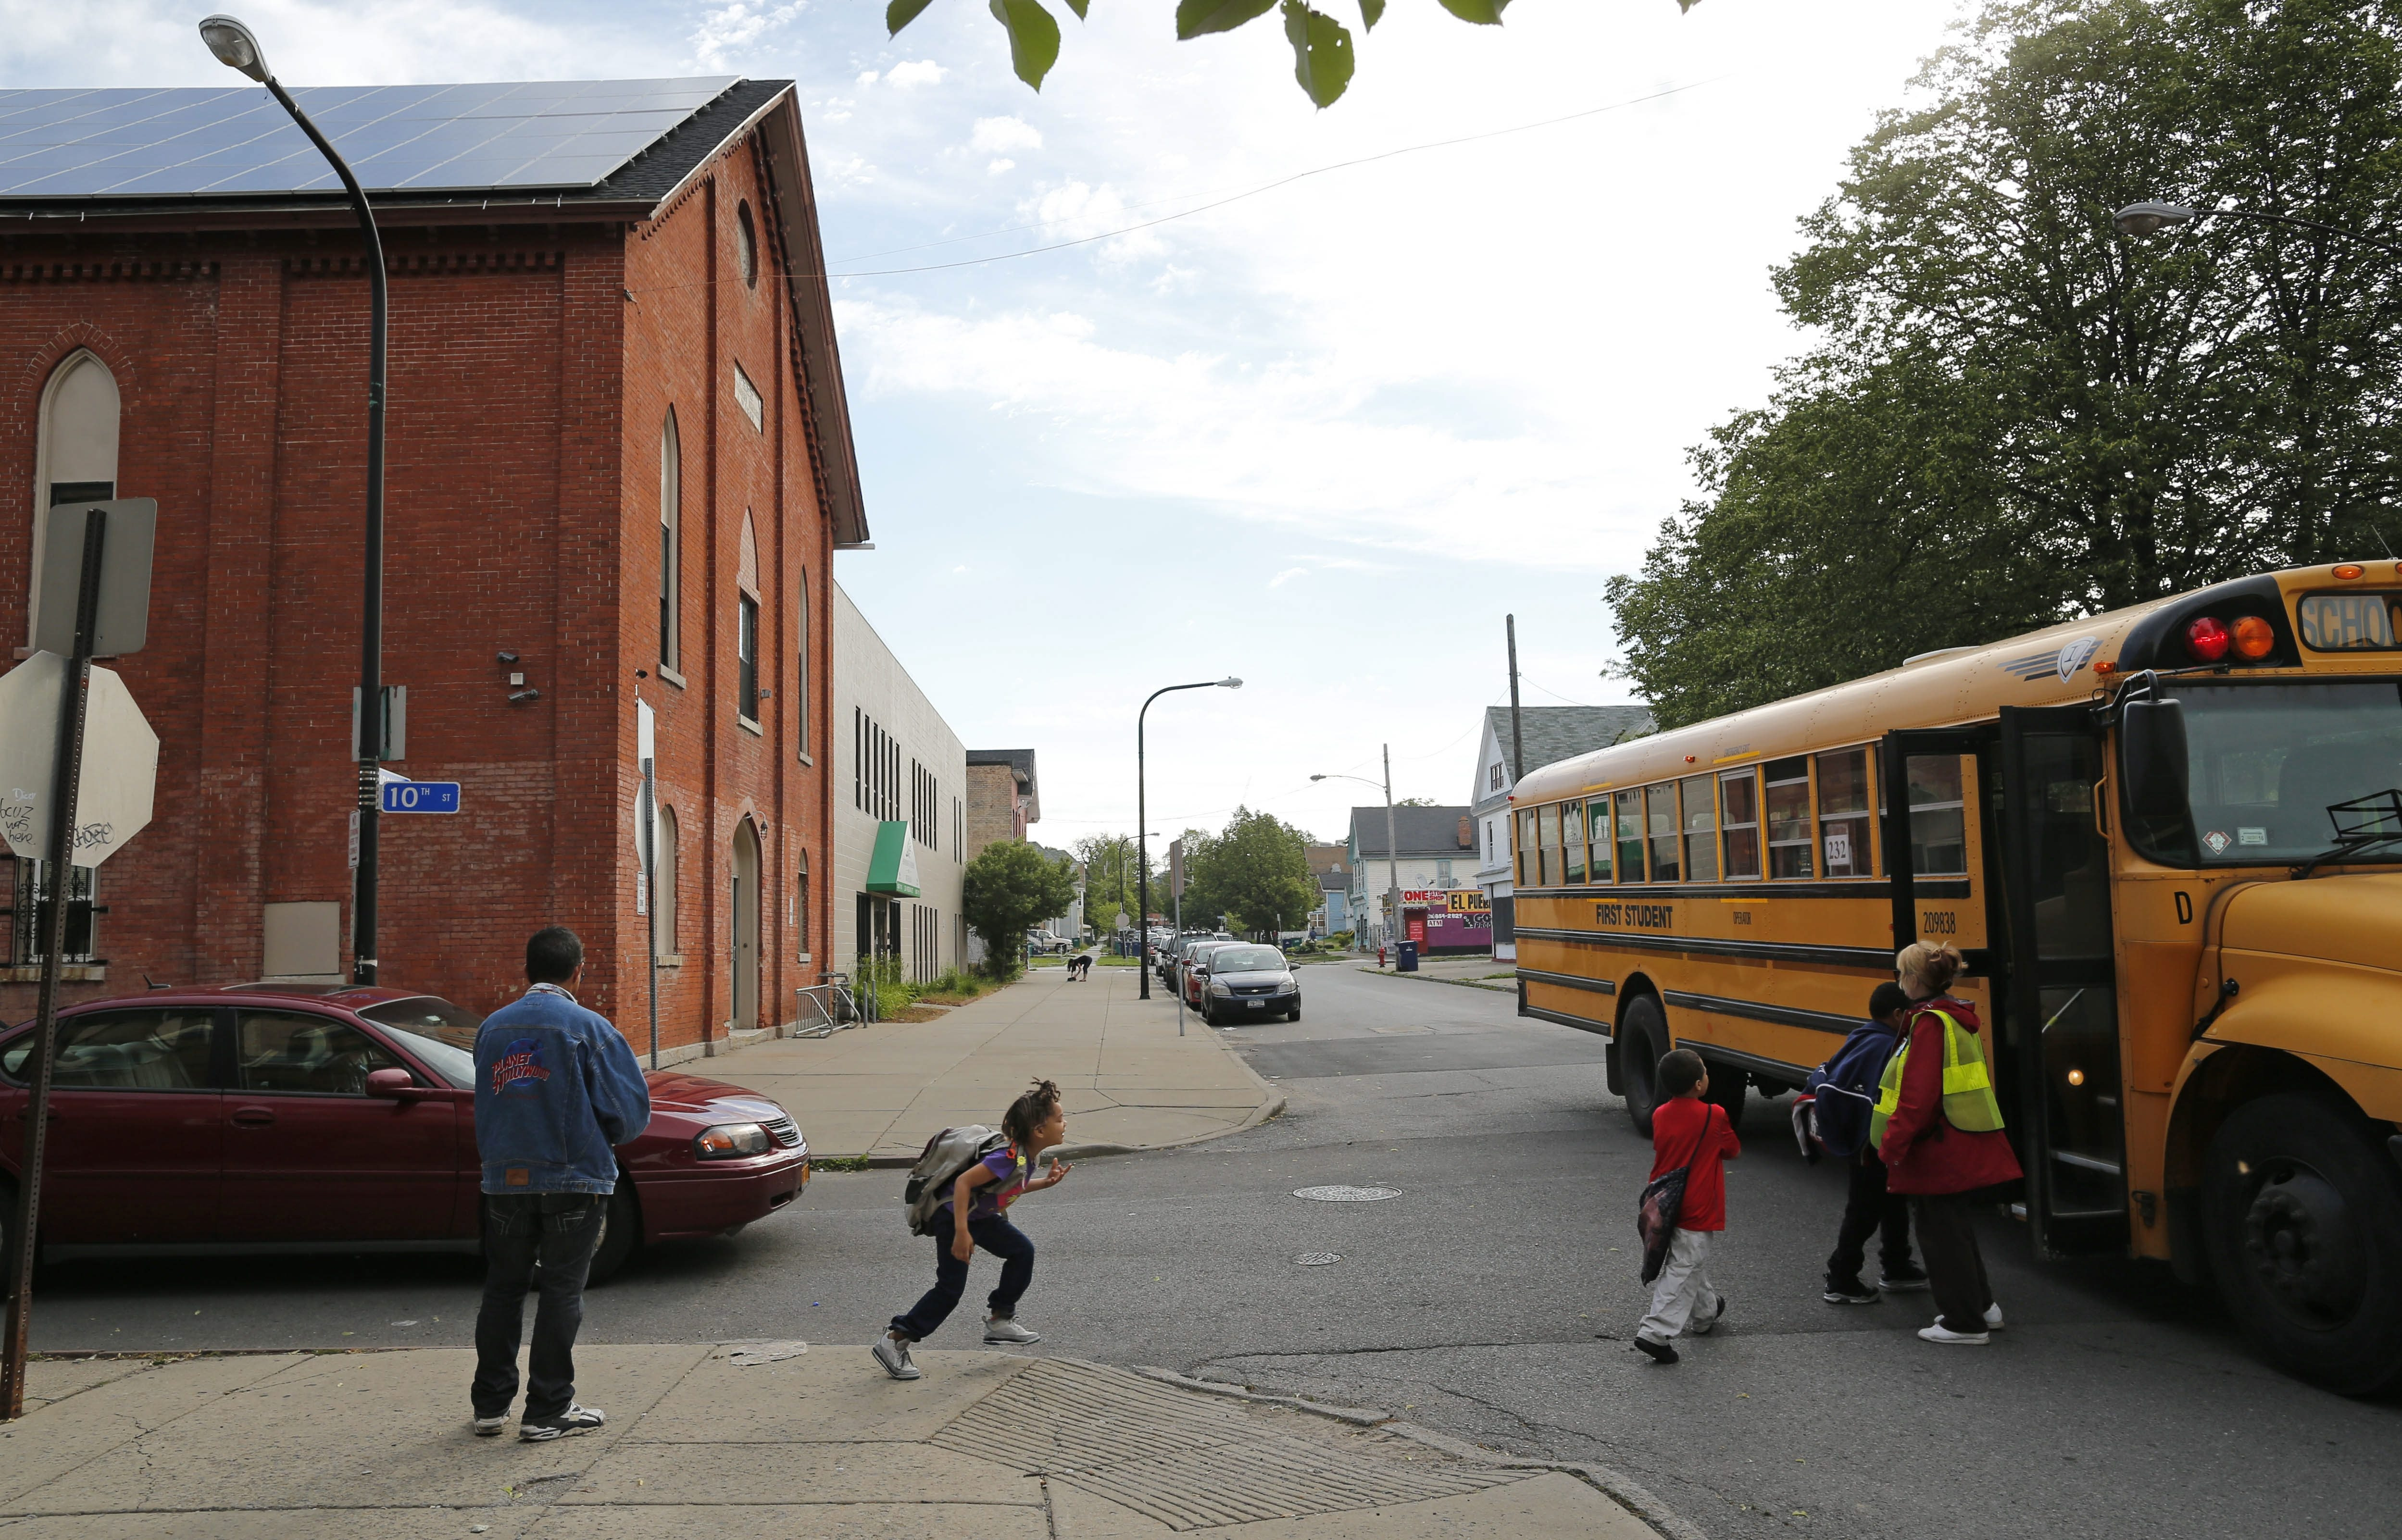 Children board the school bus on Virginia Street across the street from a methadone clinic that opened up eight months ago, Wednesday, June 17, 2015.  (Derek Gee/Buffalo News)